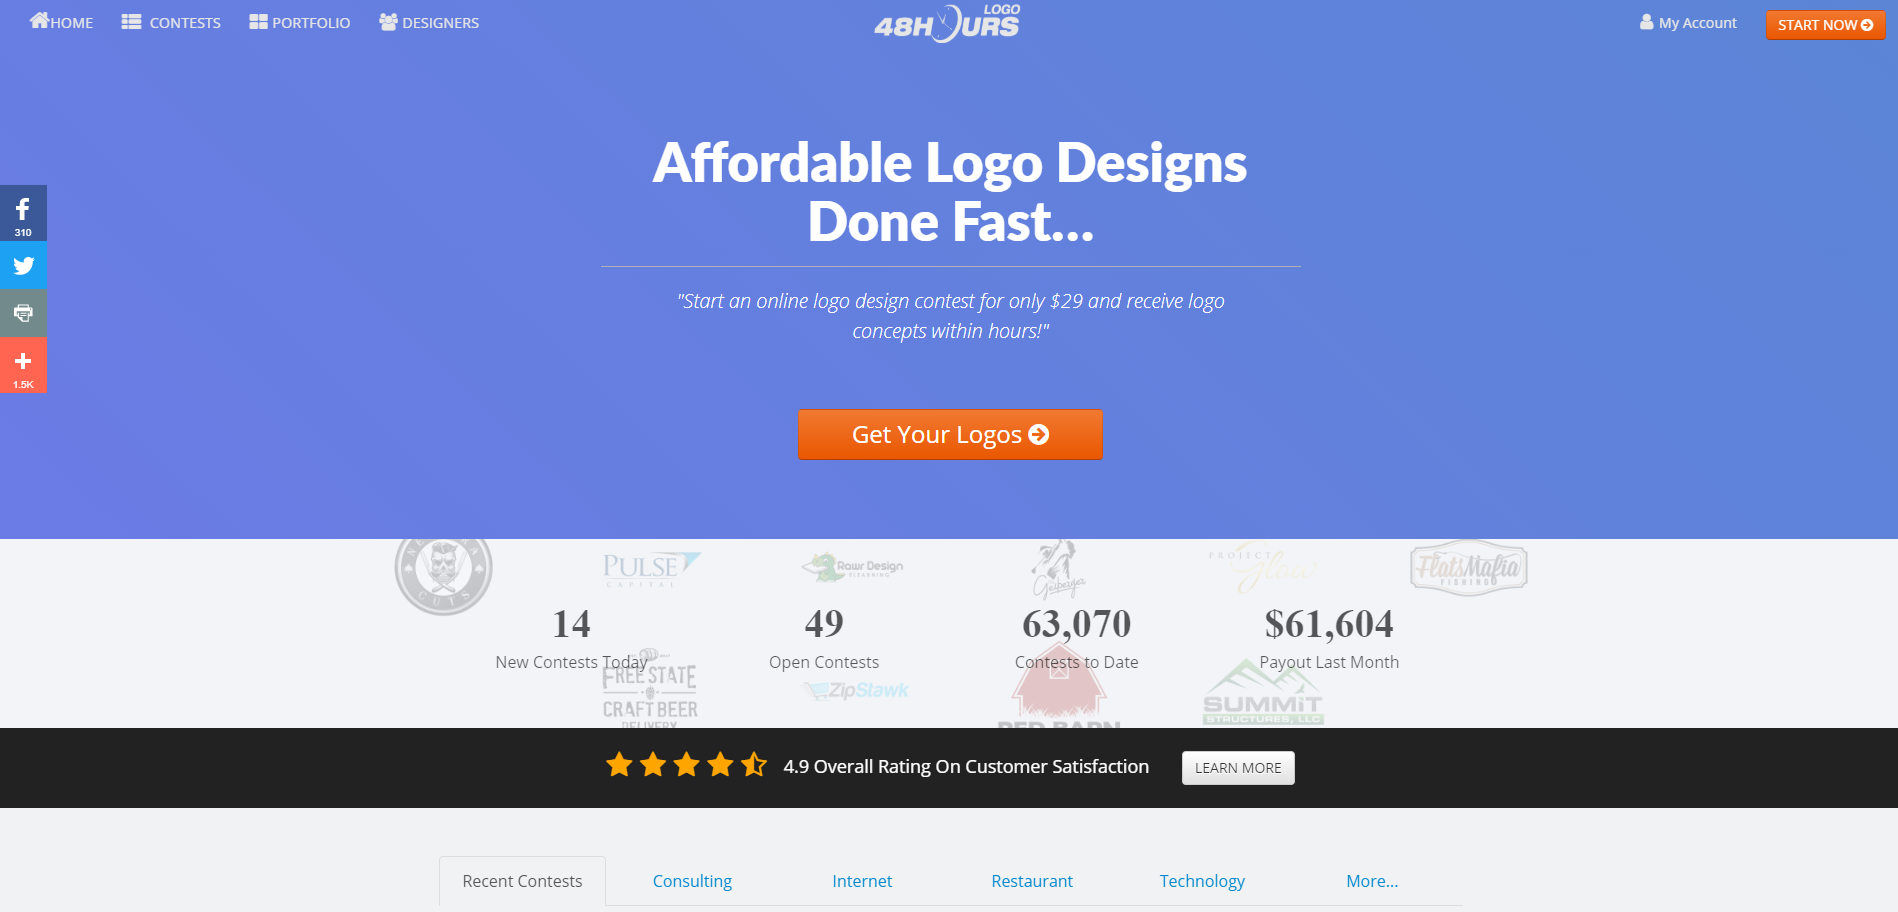 Popular Web Tools for Web Designers and Developers